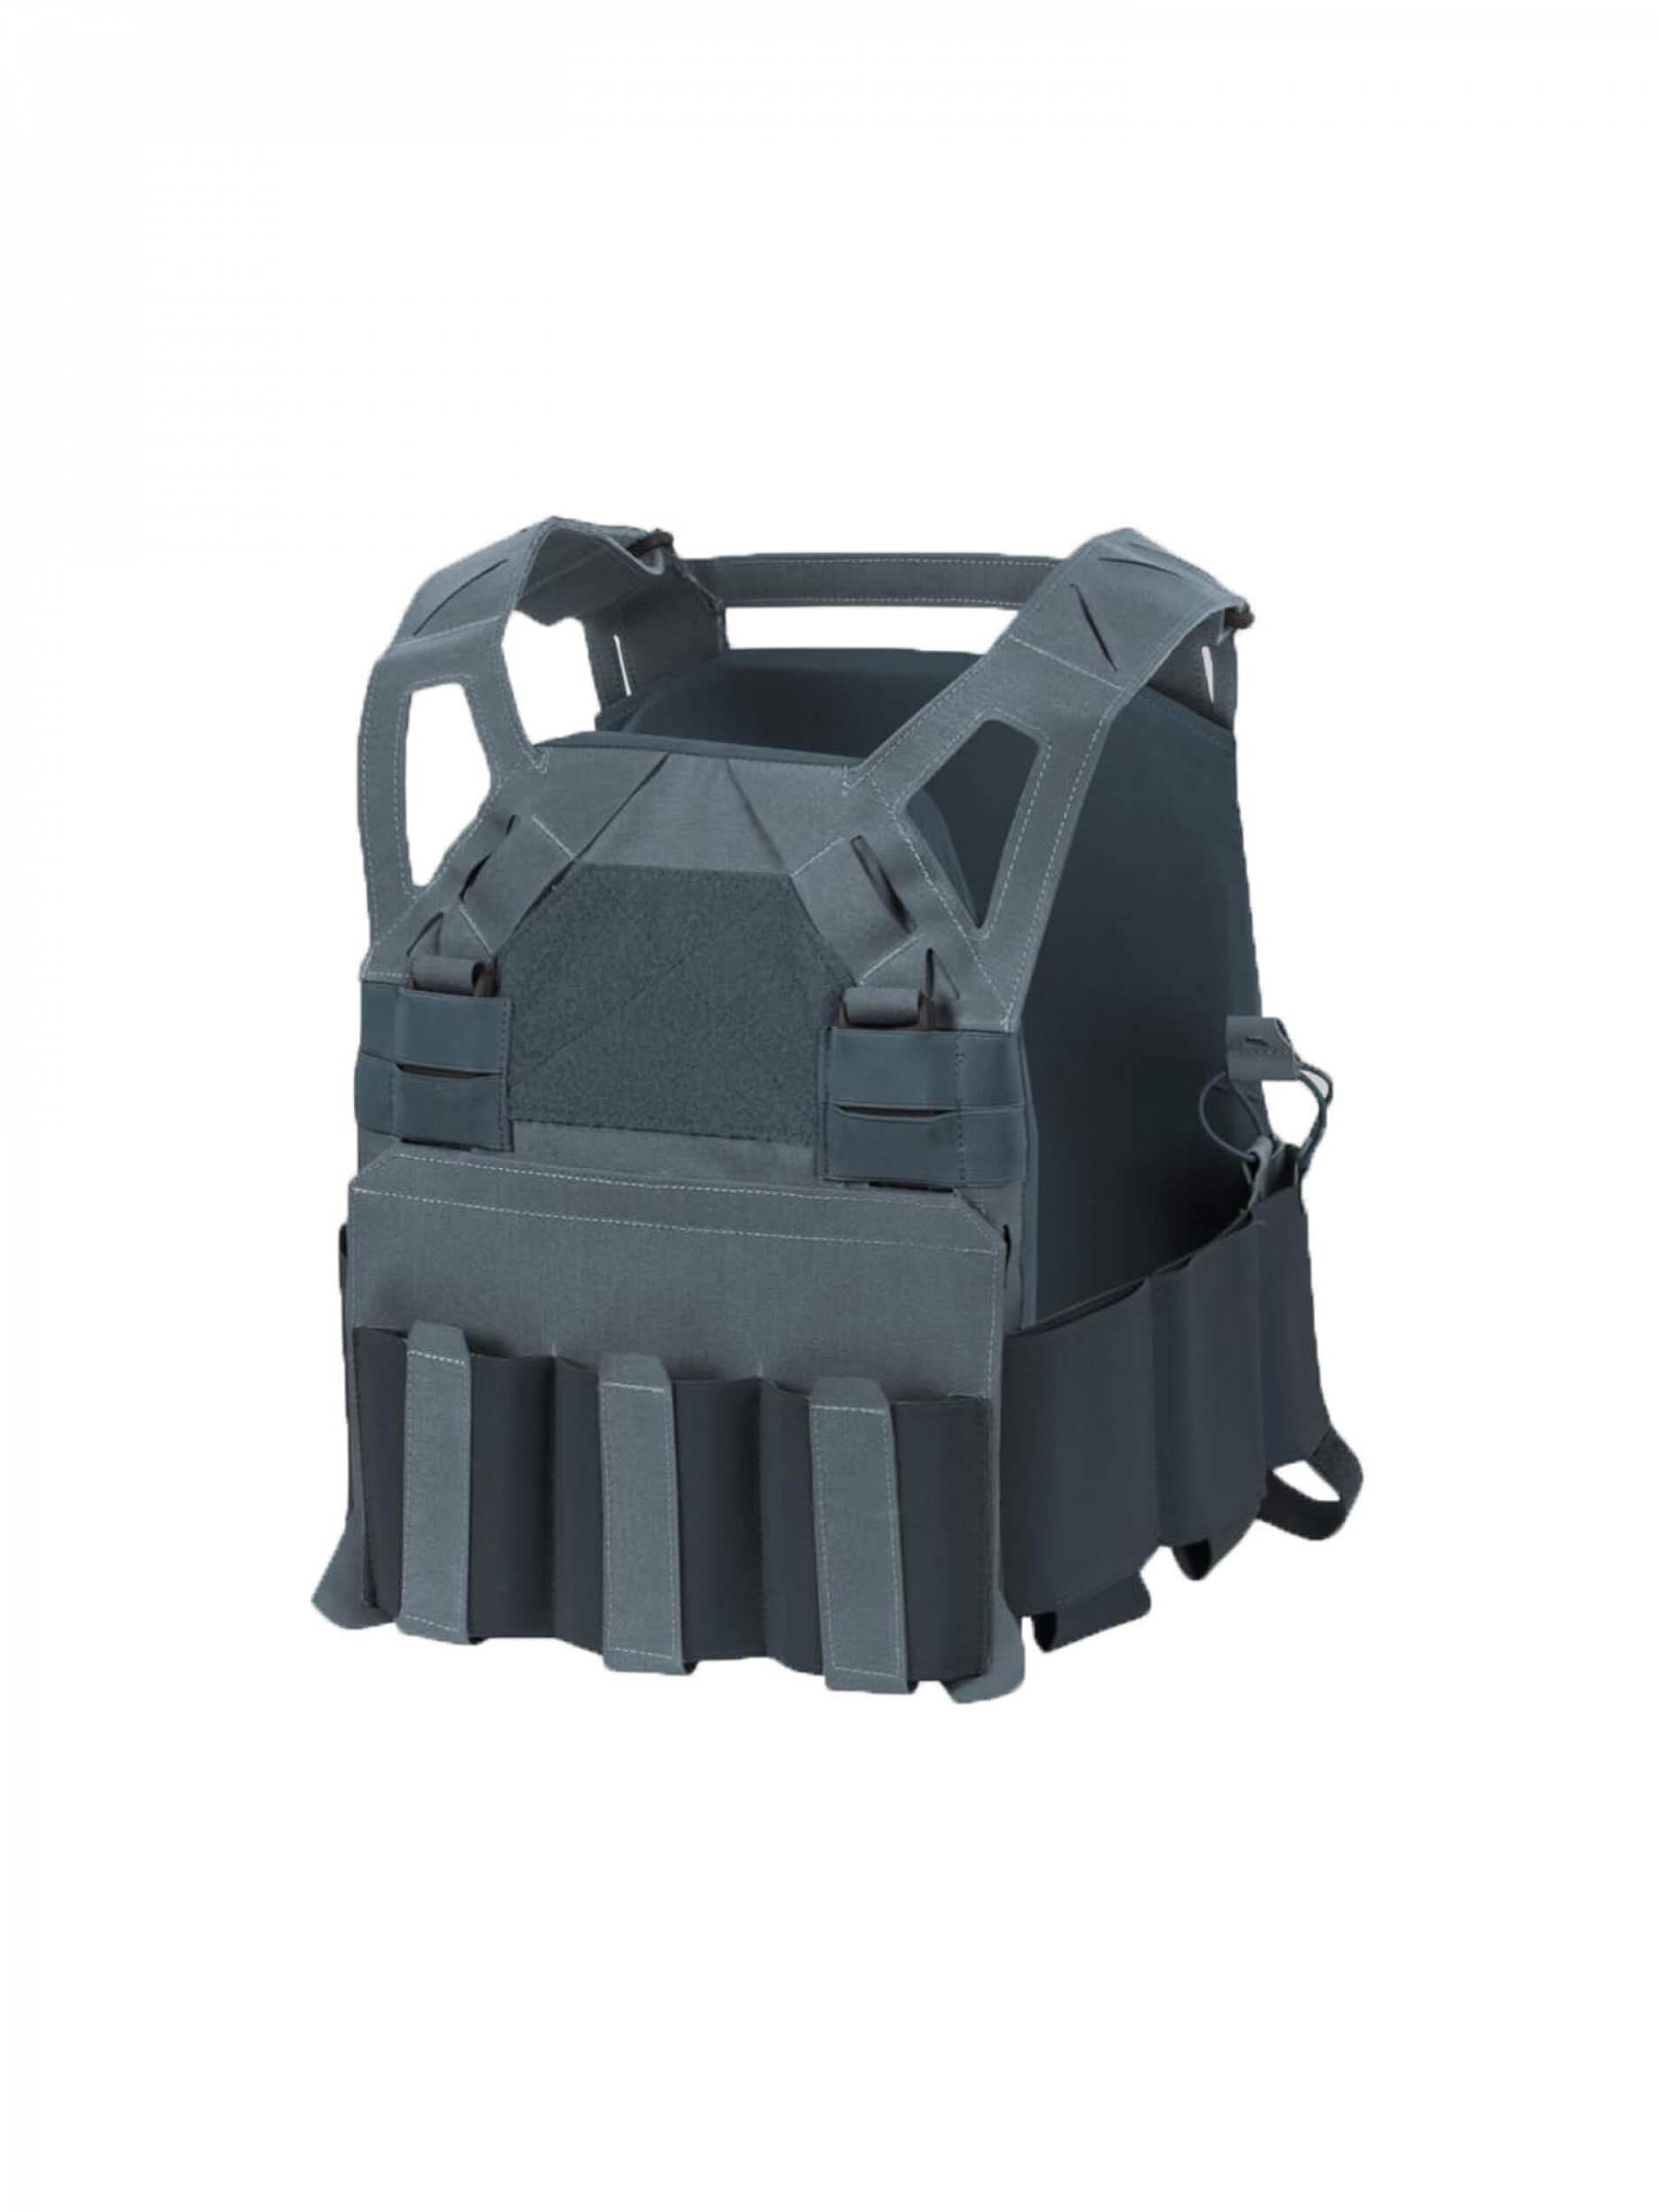 Direct Action HELLCAT LOW VIS PLATE CARRIER® -Cordura- Urban Grey